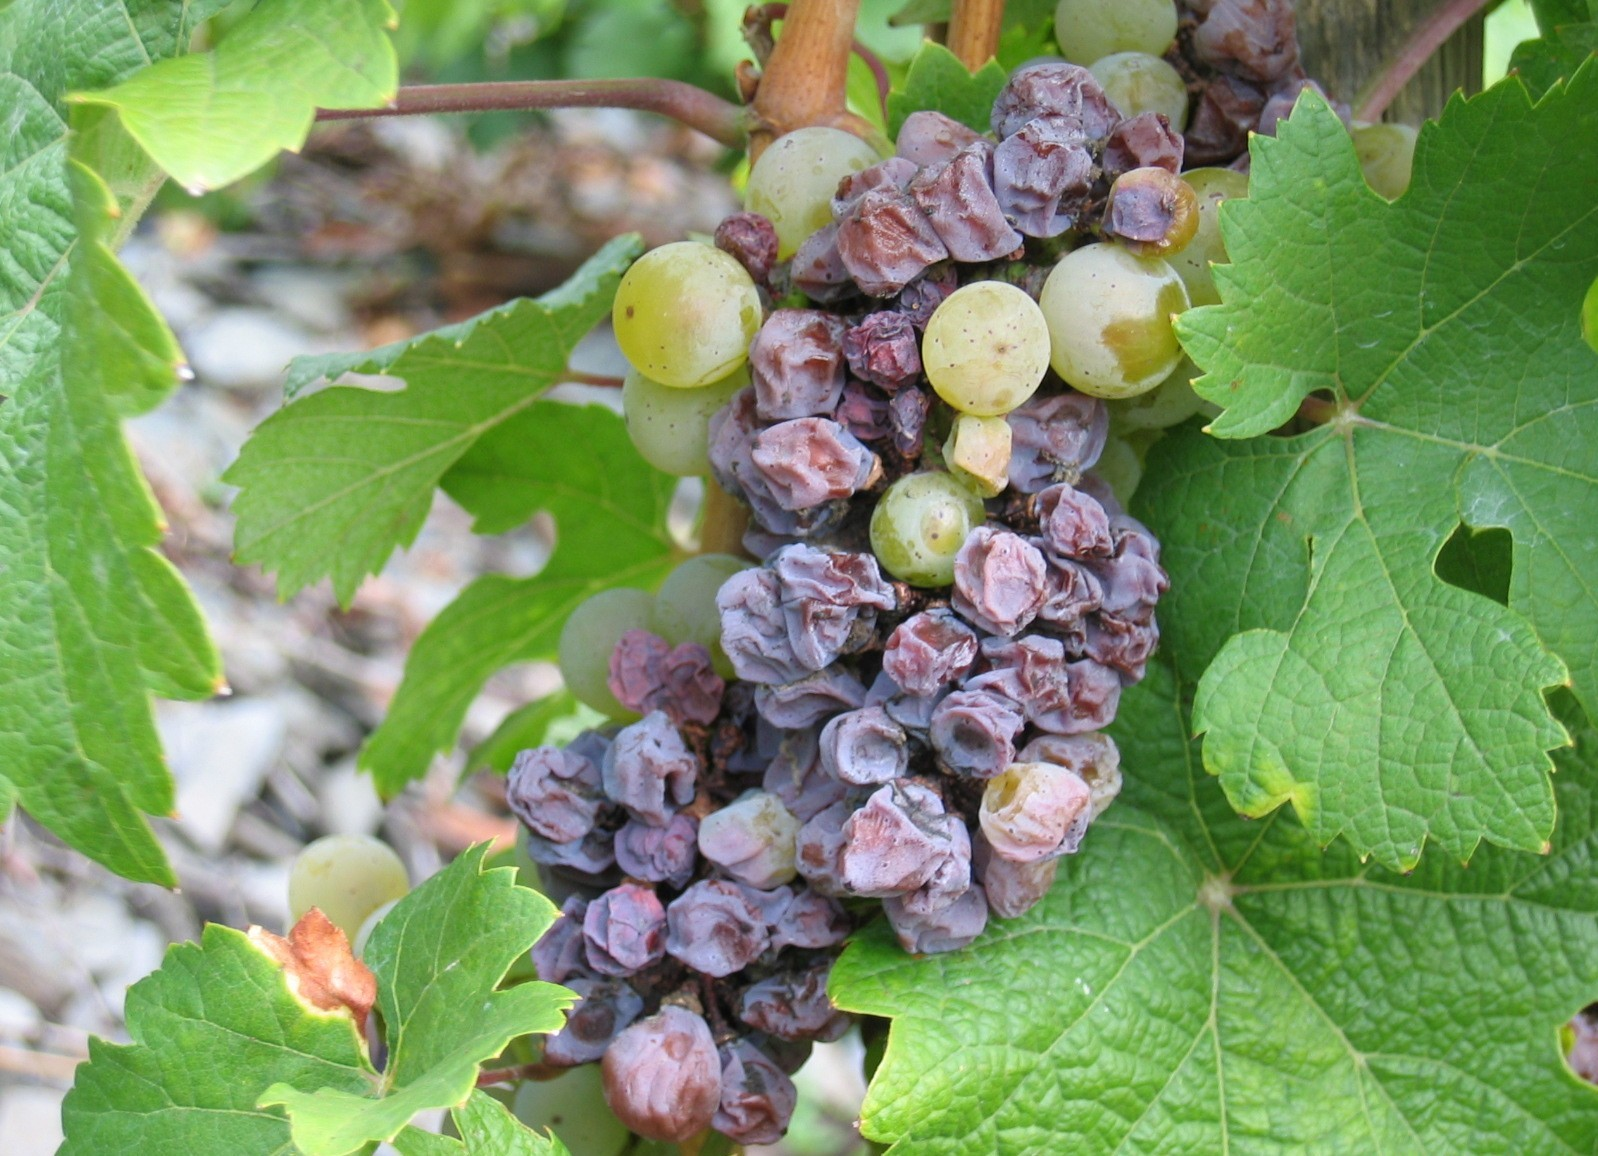 Dried grapes can make surprisingly good wine.